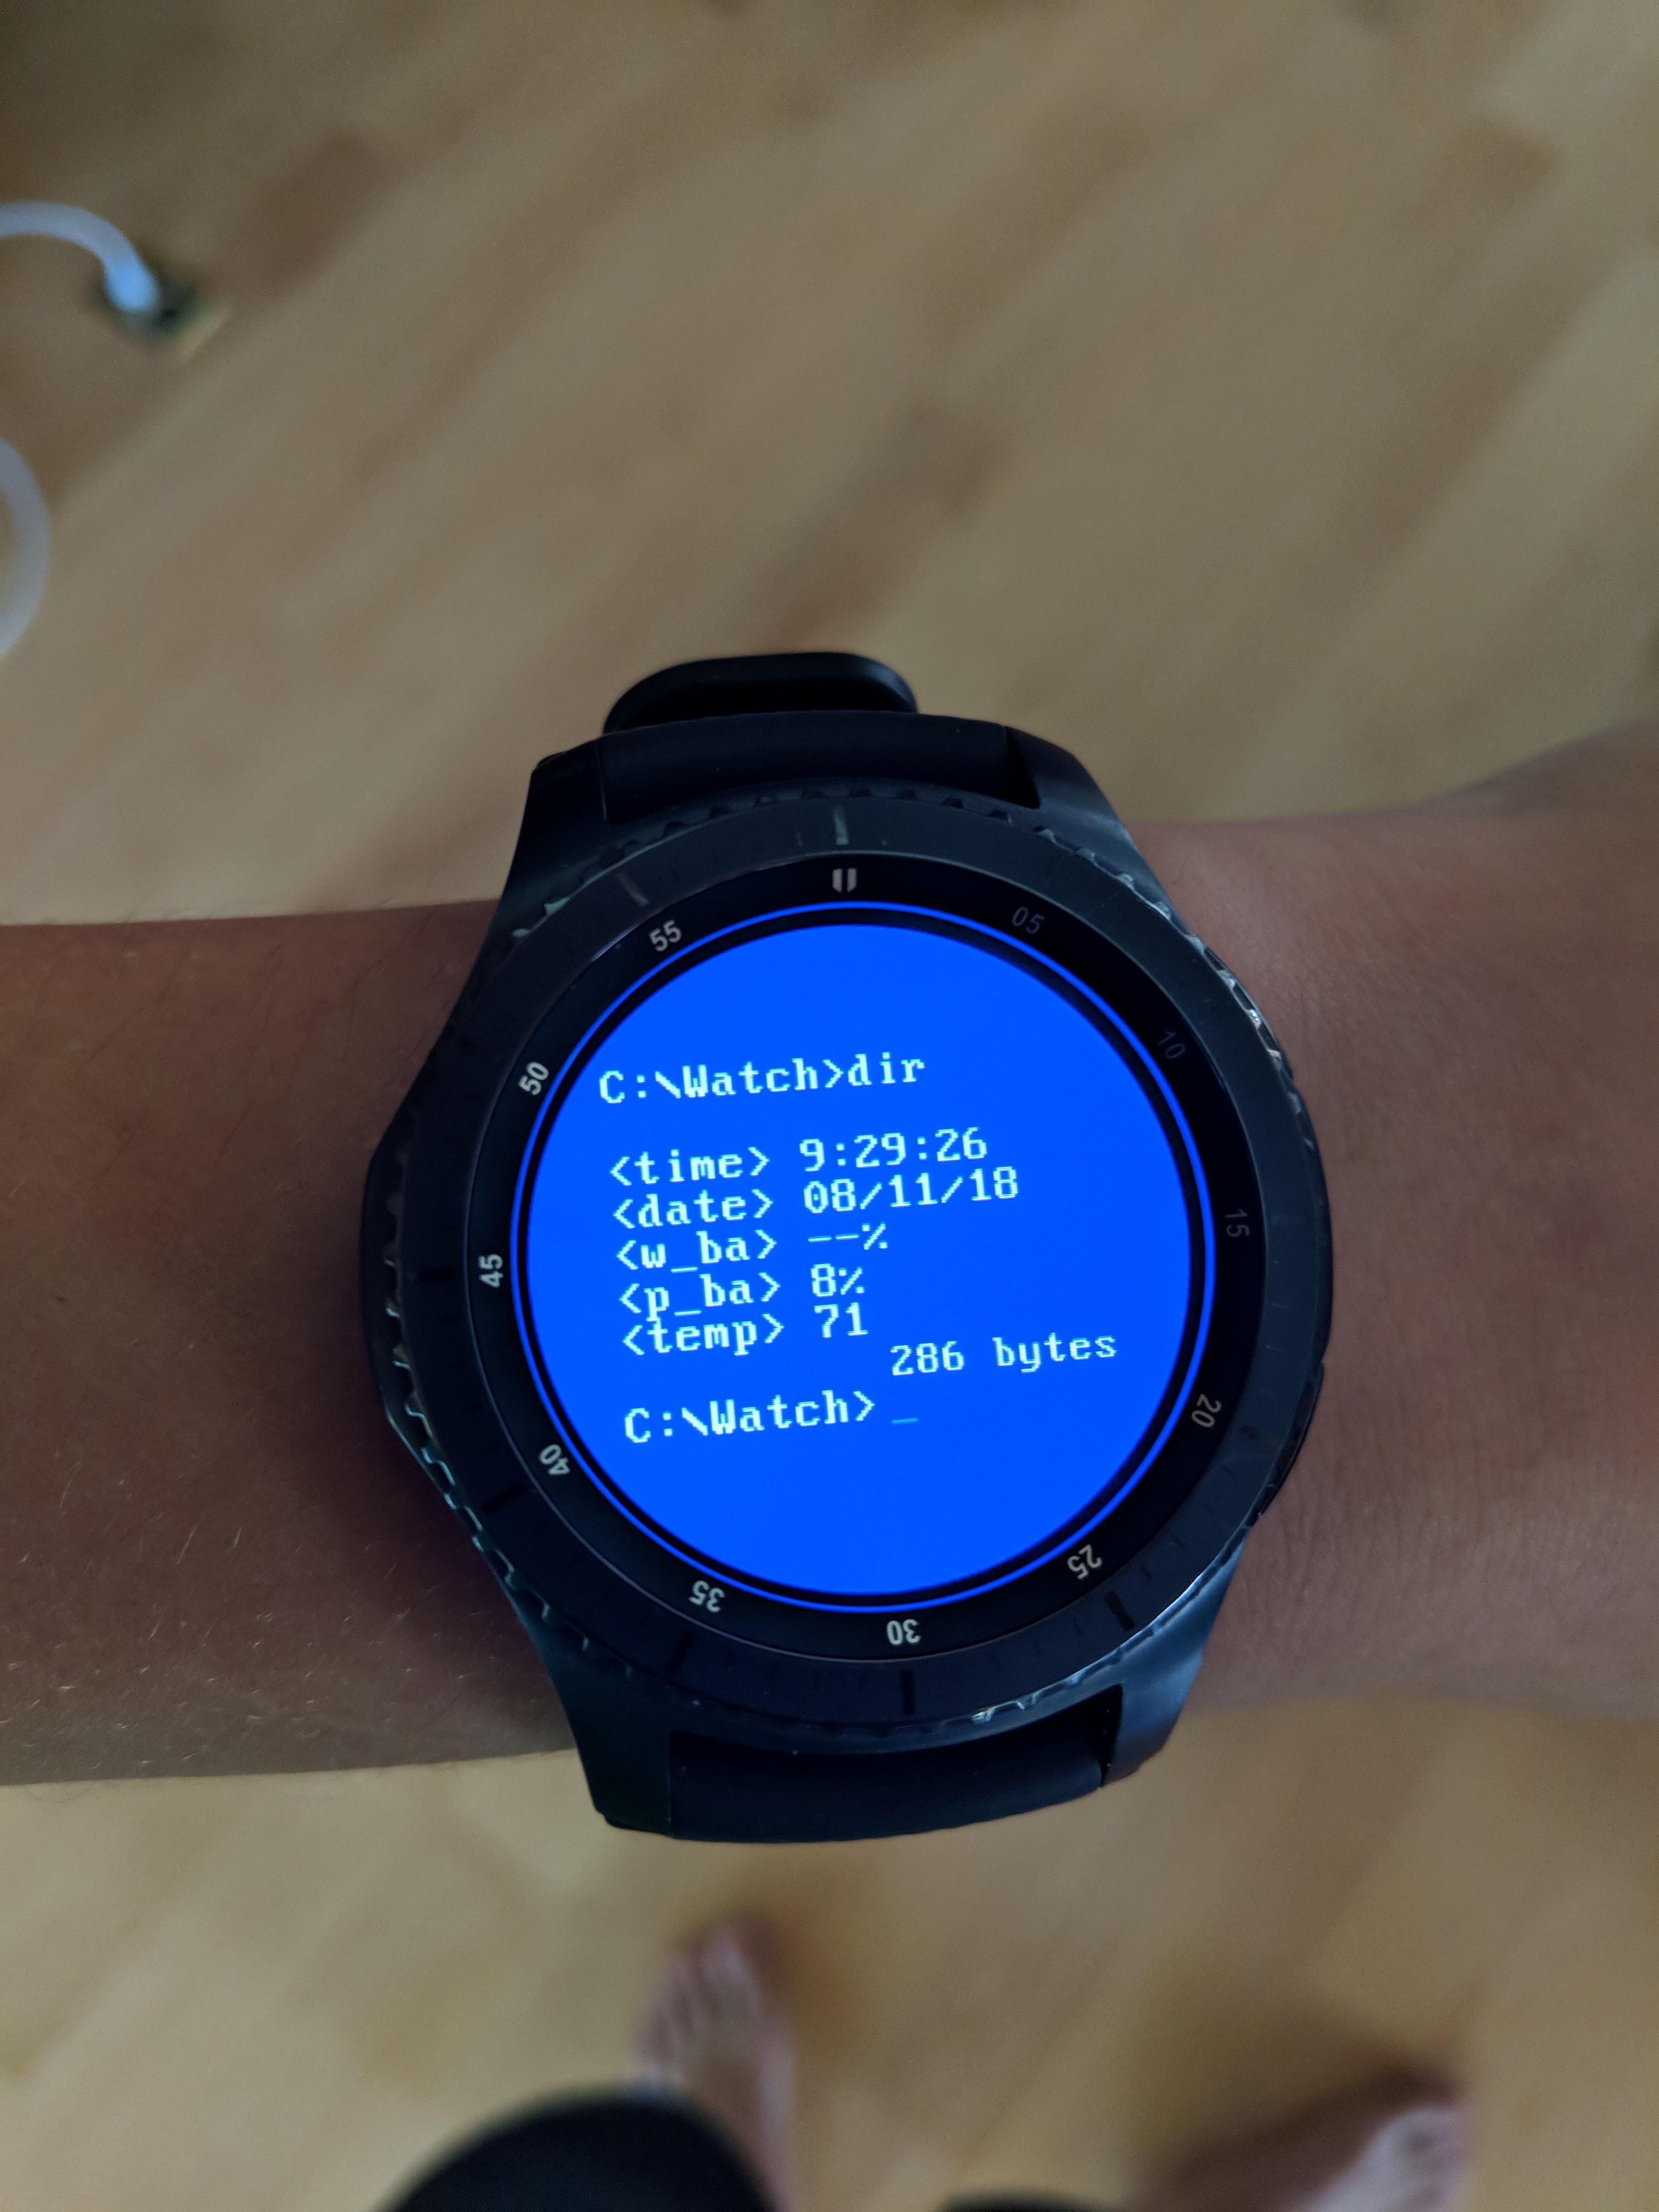 Pin by Kate Hannah on Interesting! | Watch faces, Watches